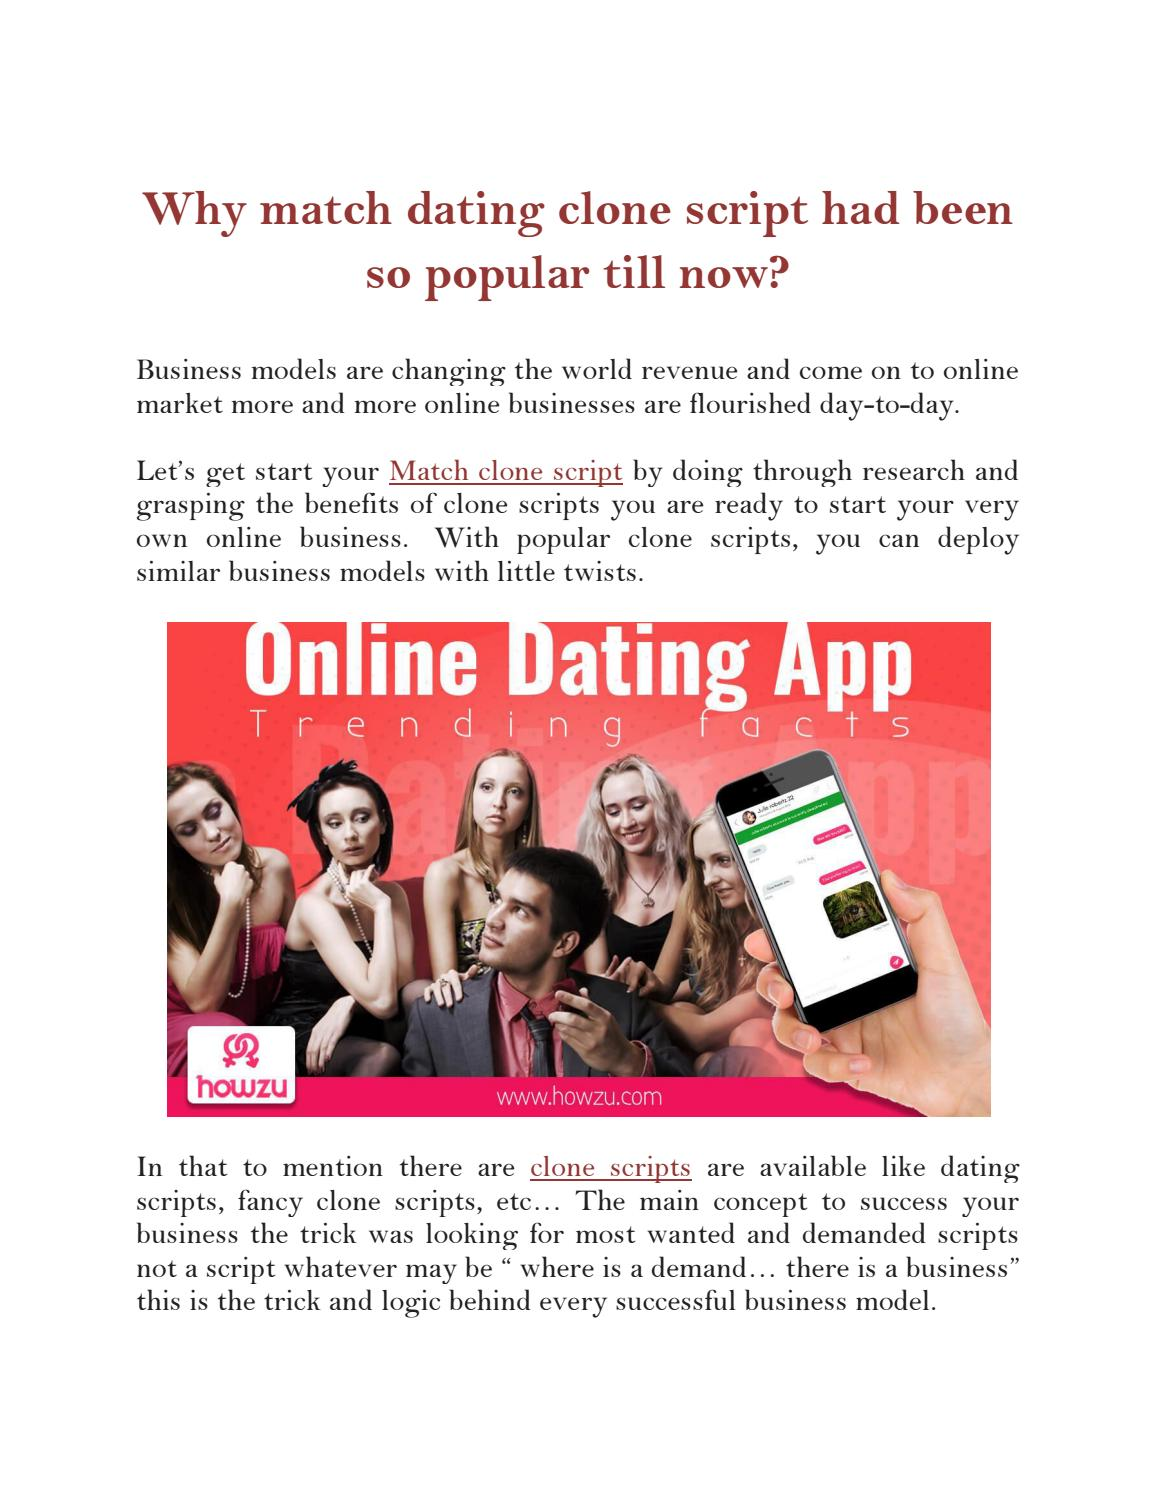 Why do you think online dating is so popular